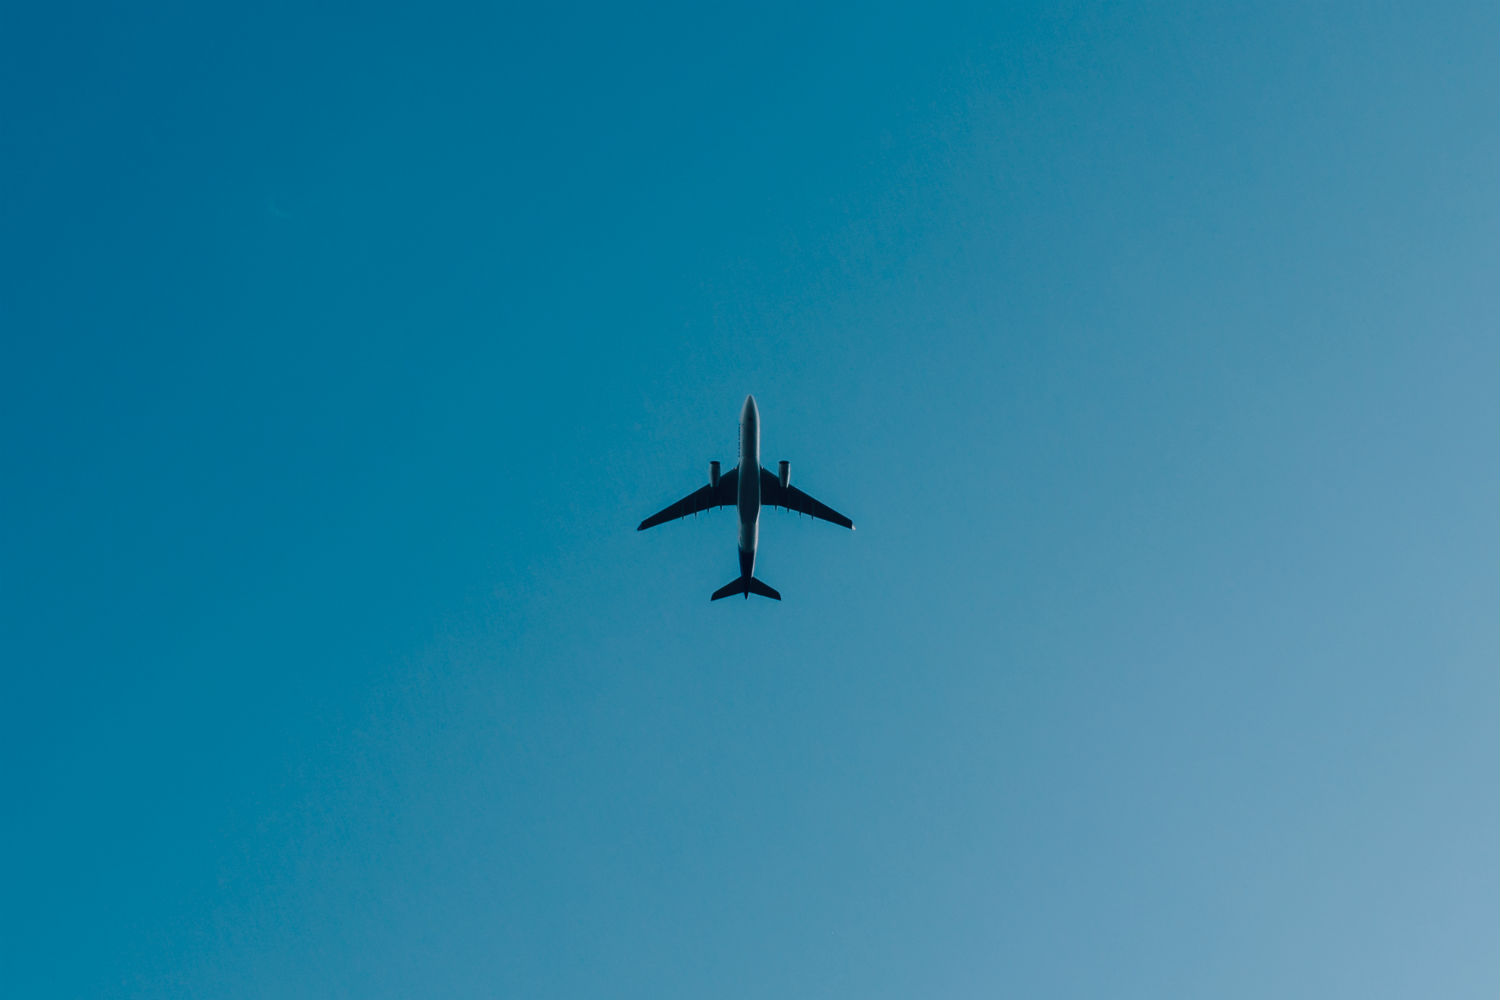 minimalist photography arman bahreini airplane sky blue